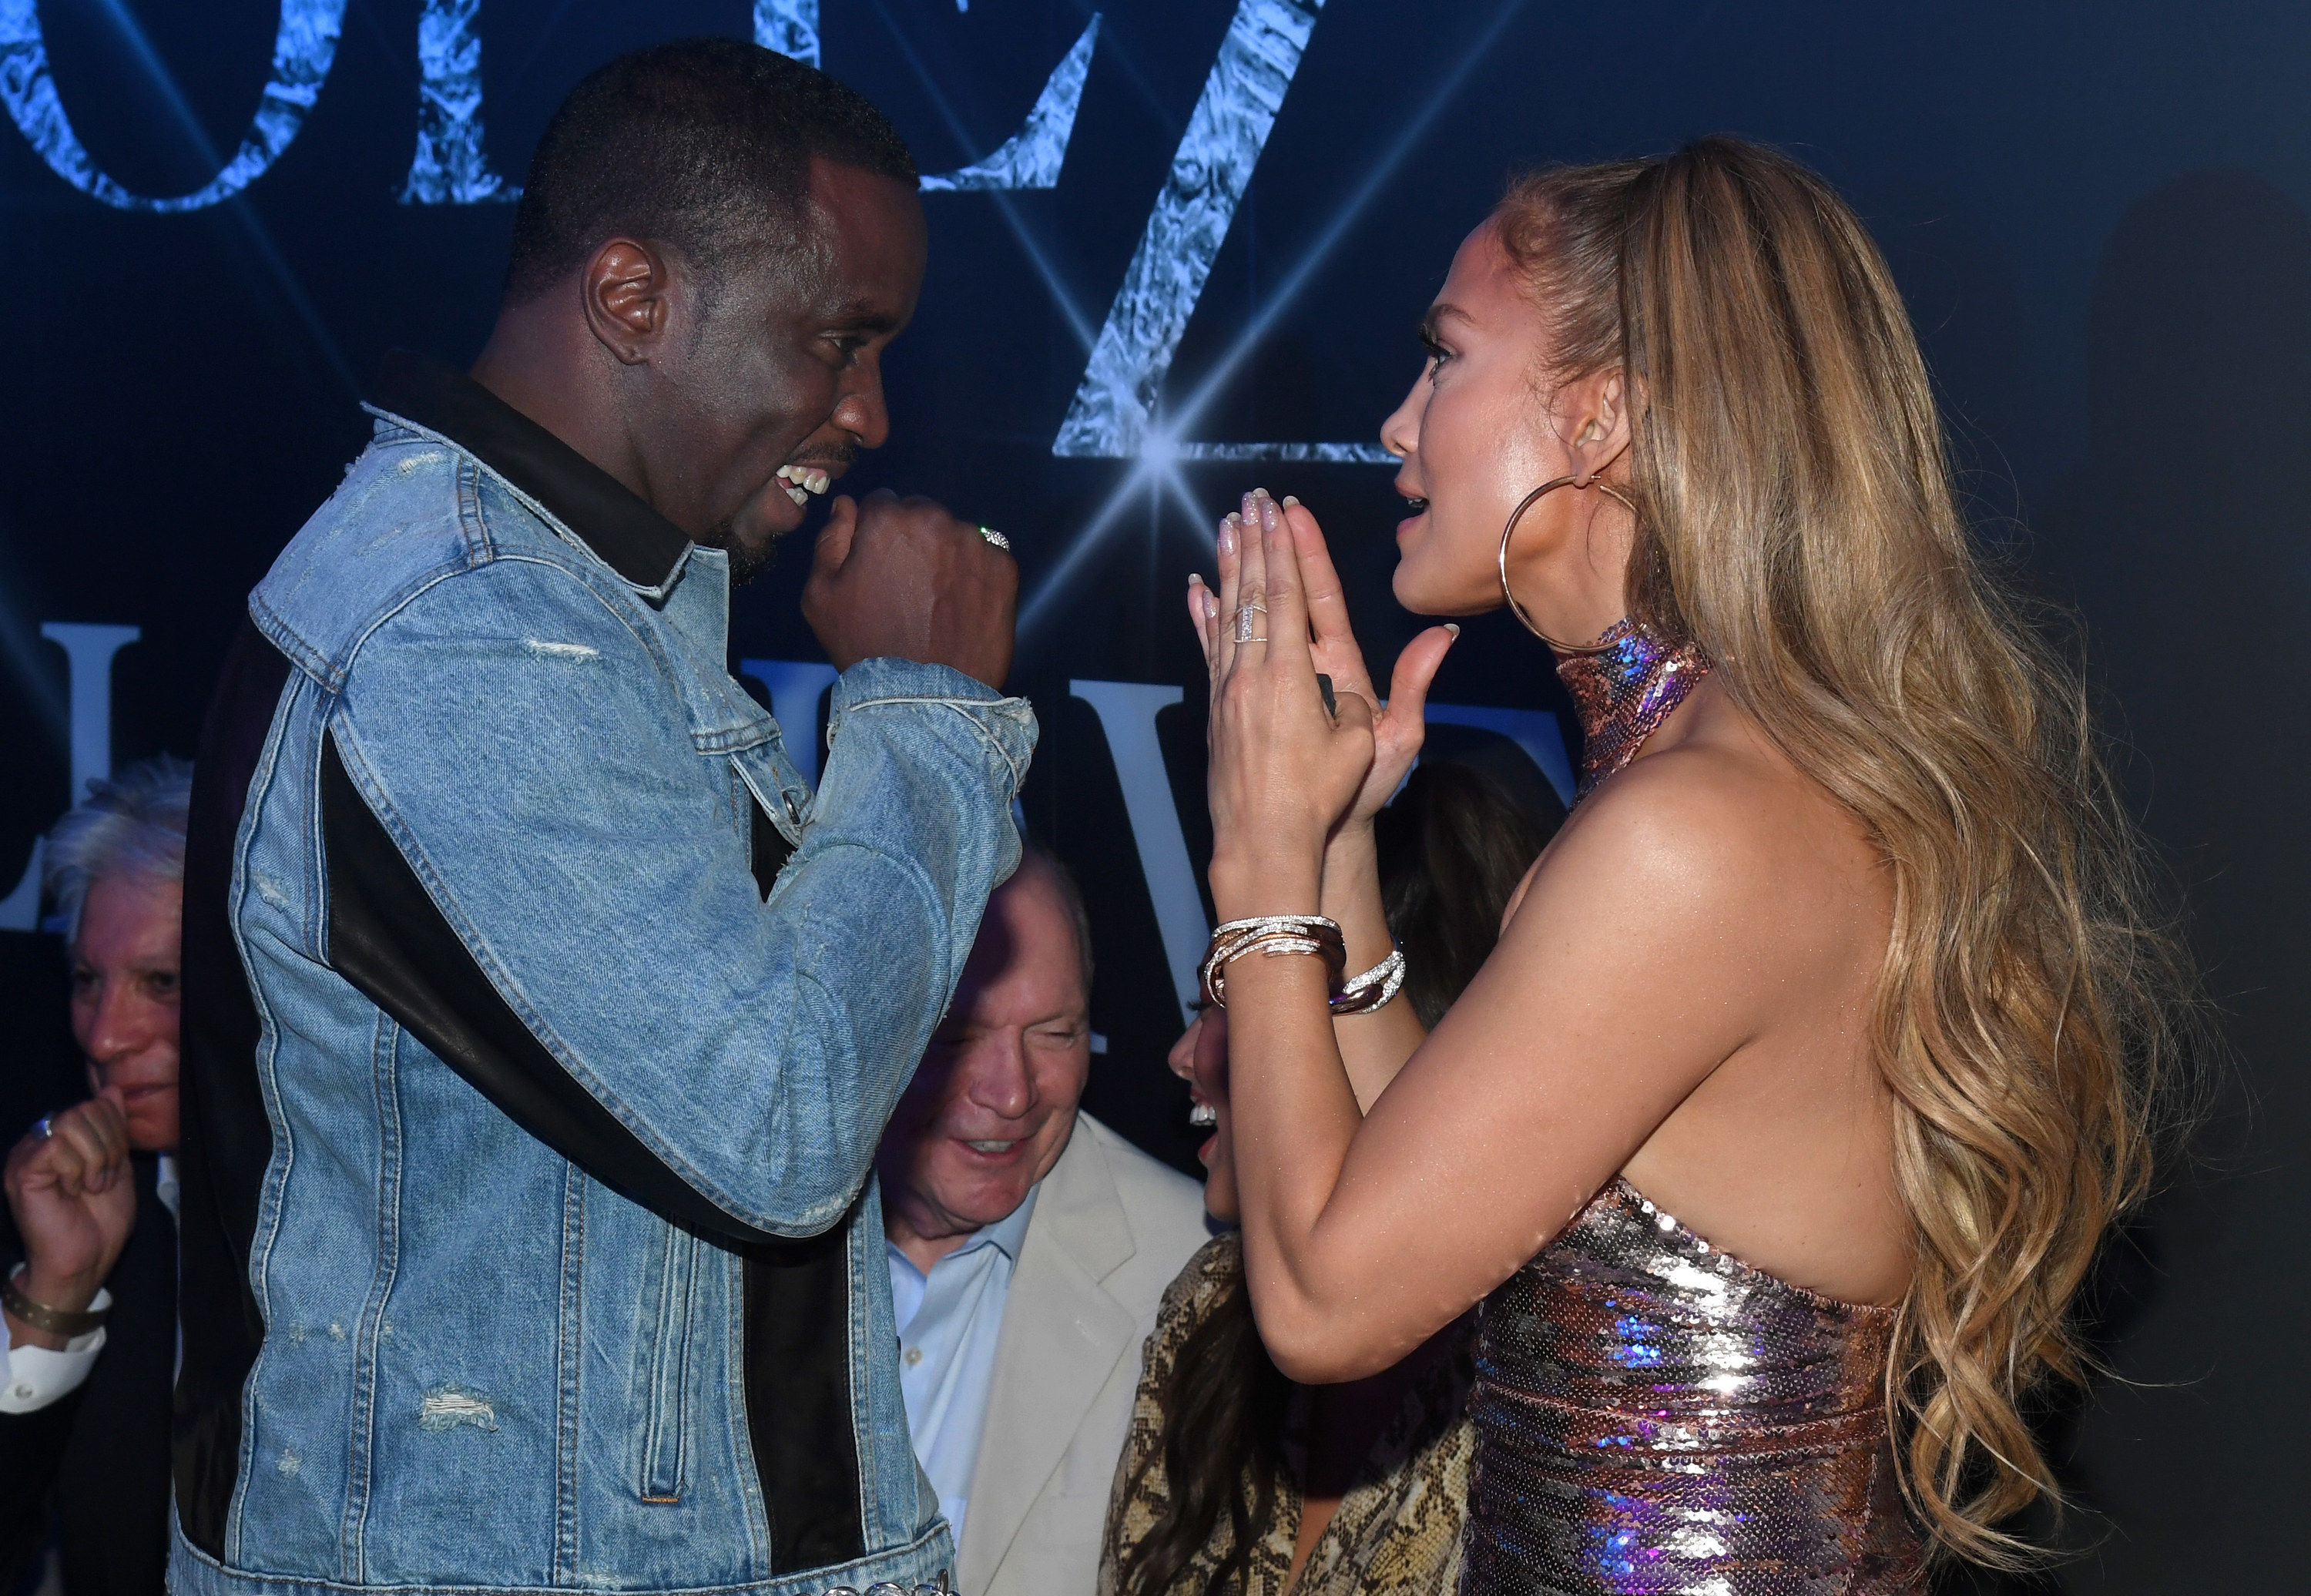 Jennifer and Diddy face each other to talk at the afterparty